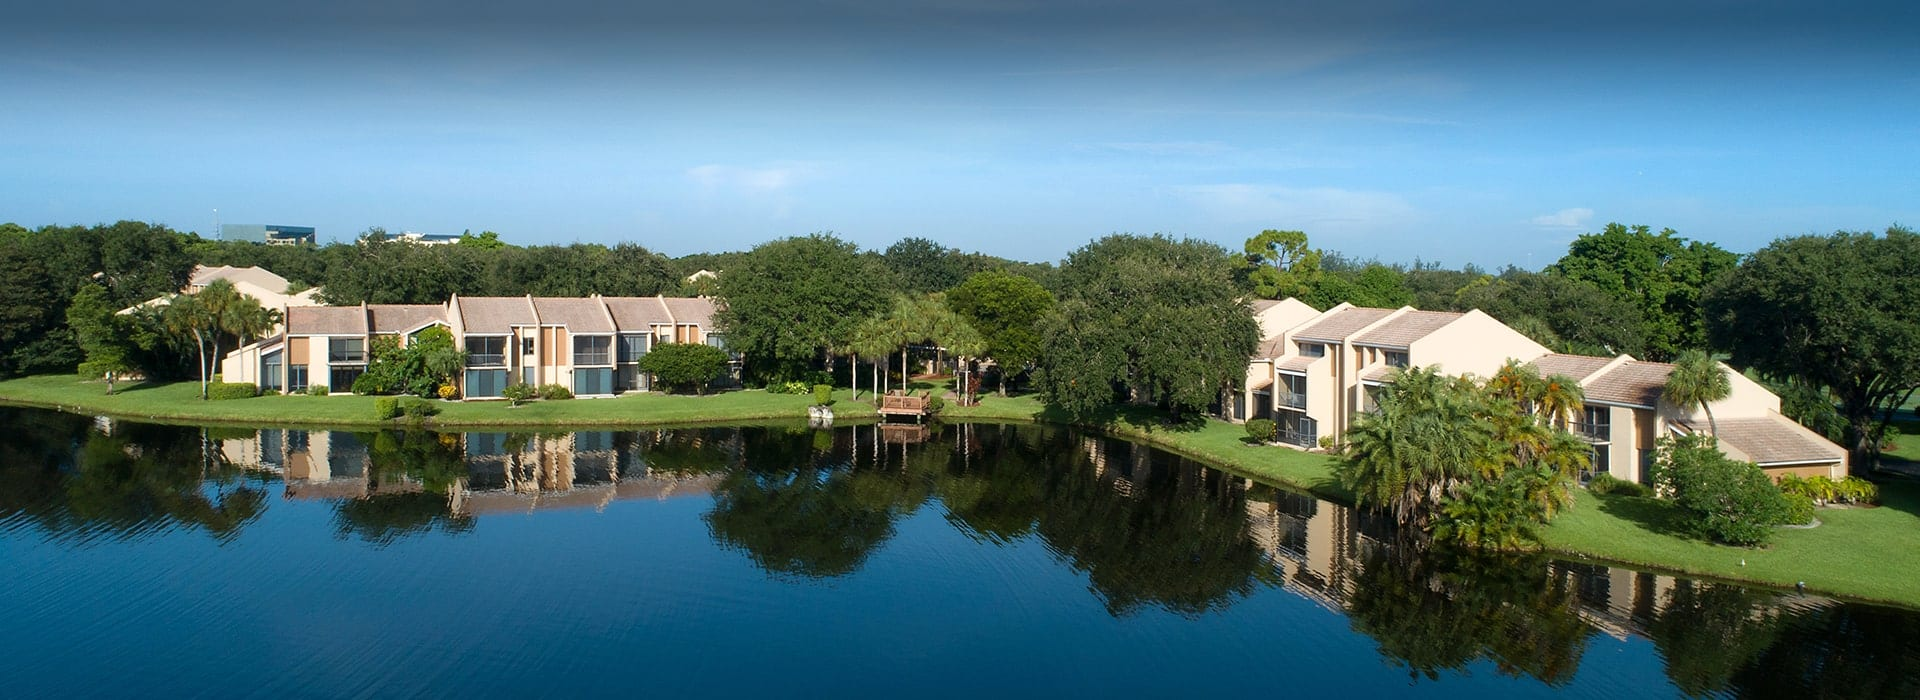 Pinelake townhomes with garden, lake and golf course views